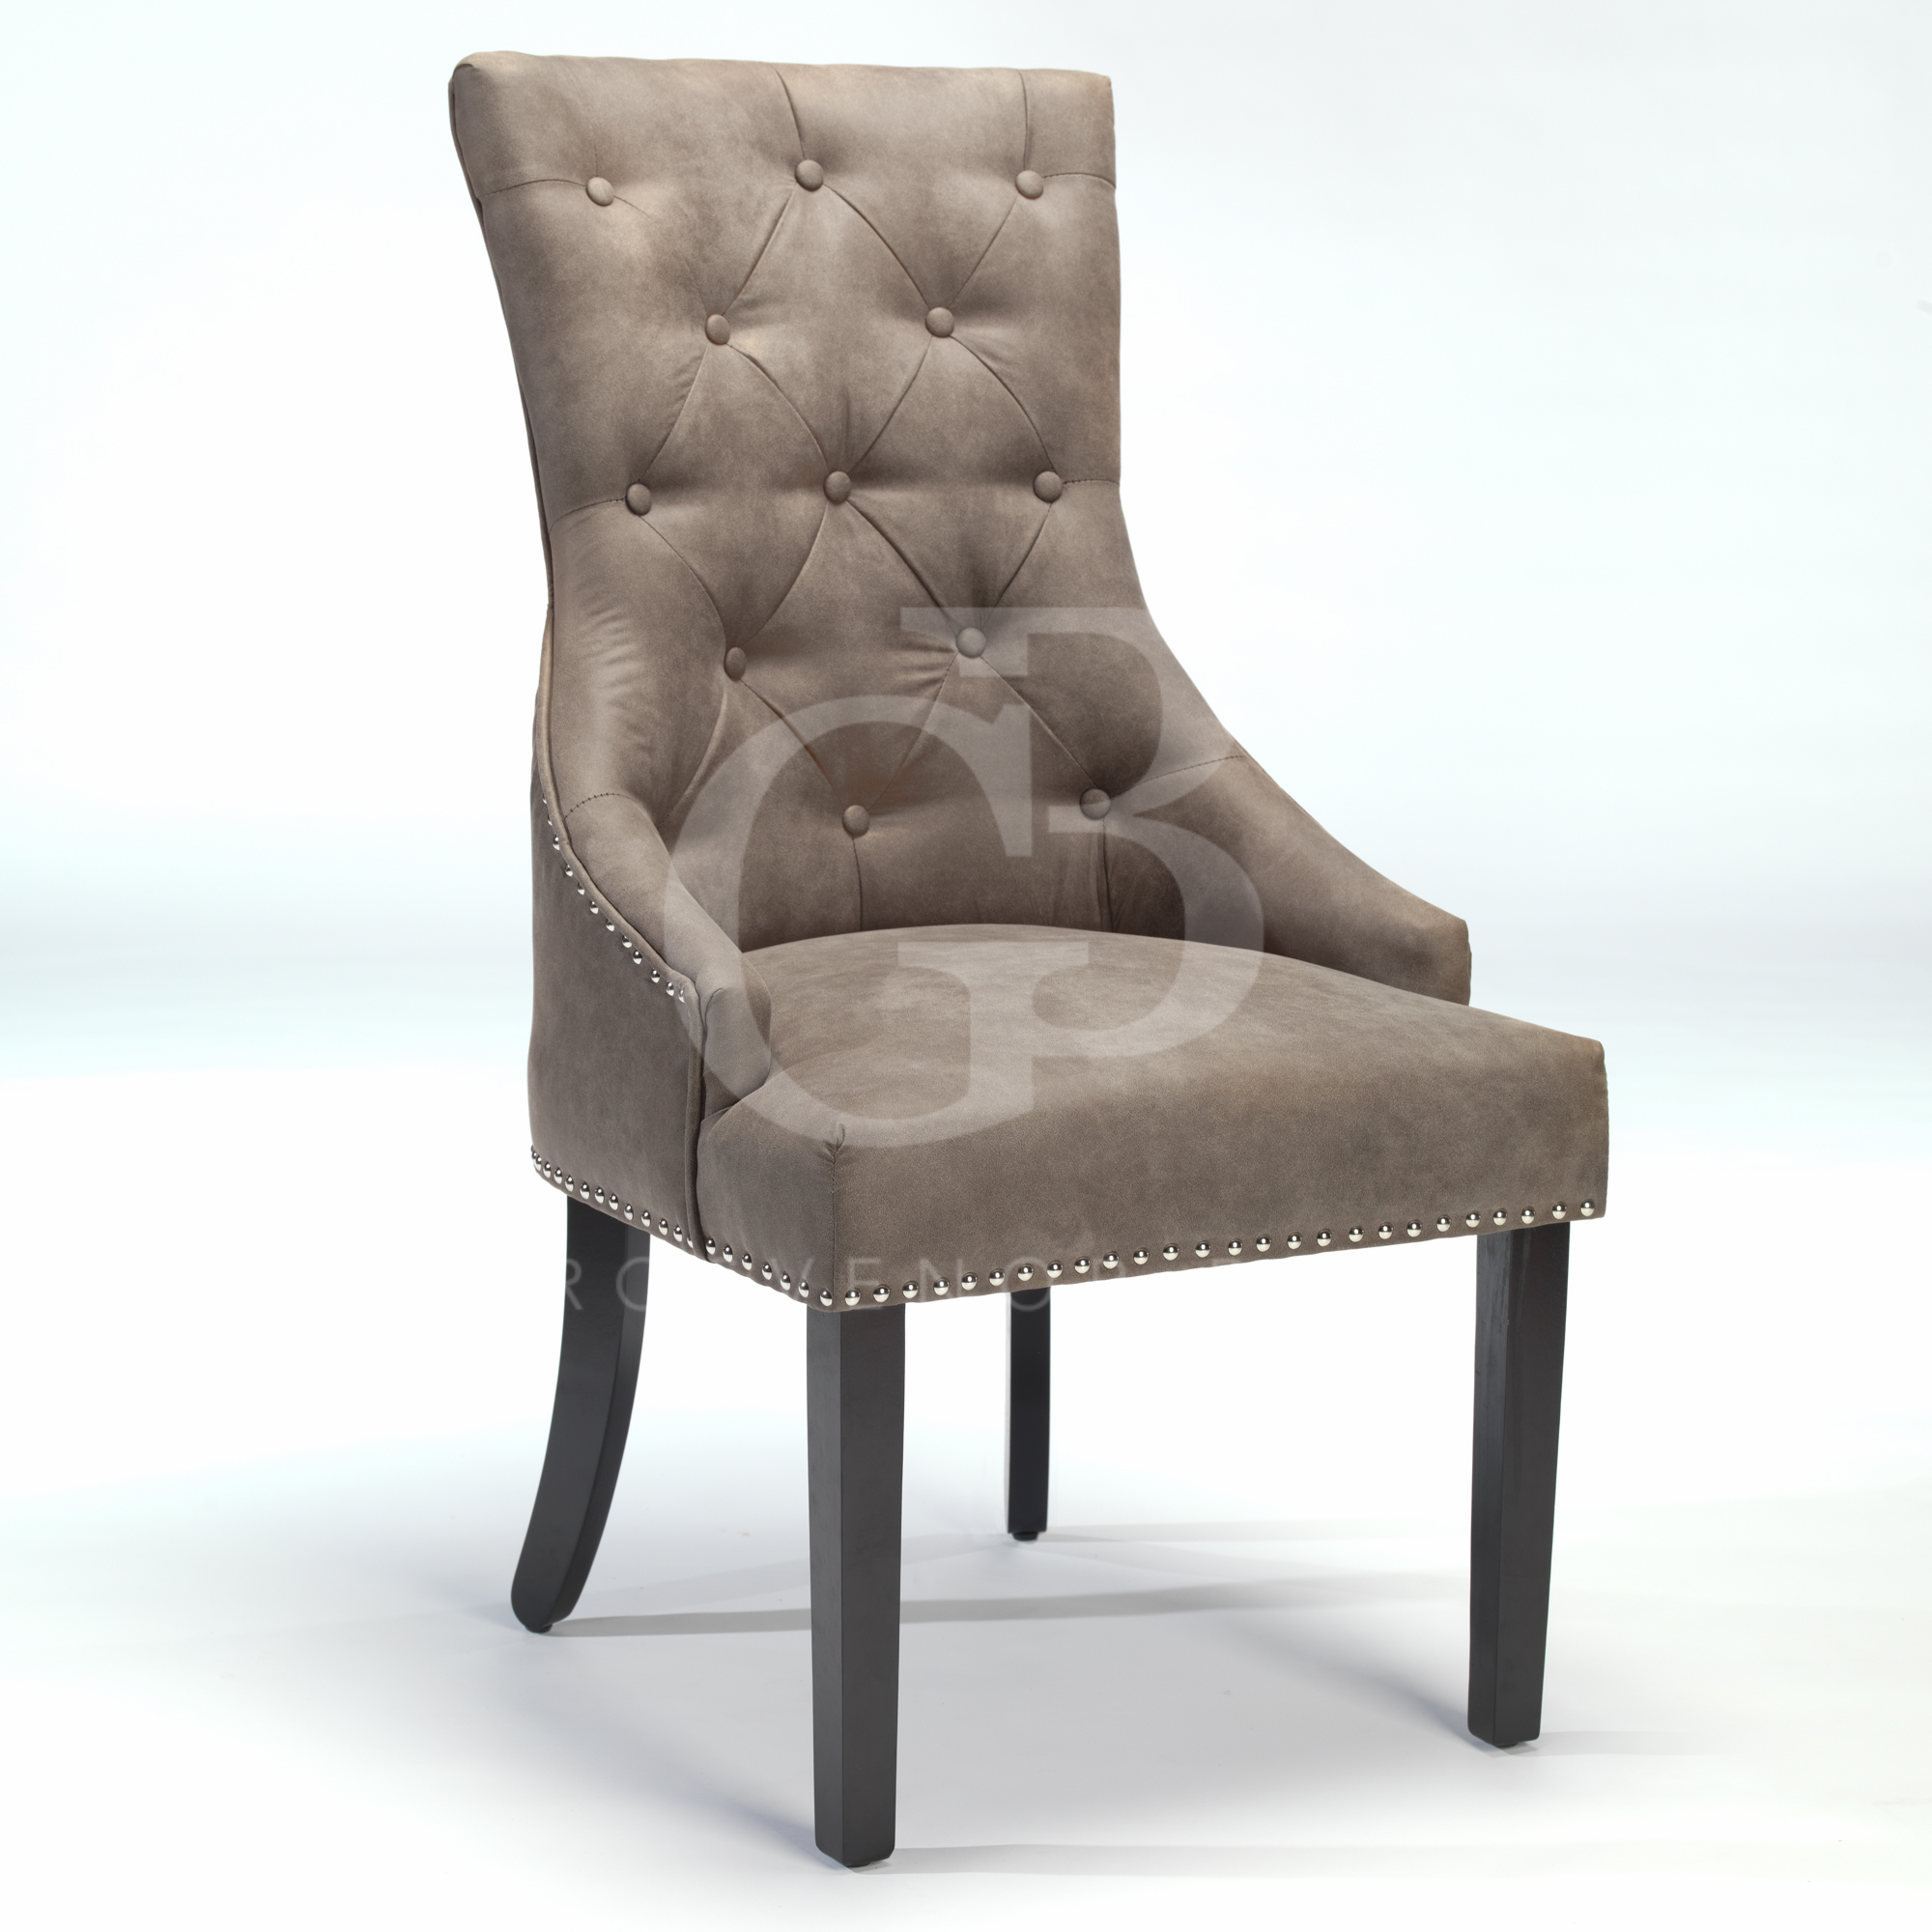 upholstered scoop back dining chairs percival lafer chair new buttoned with studs